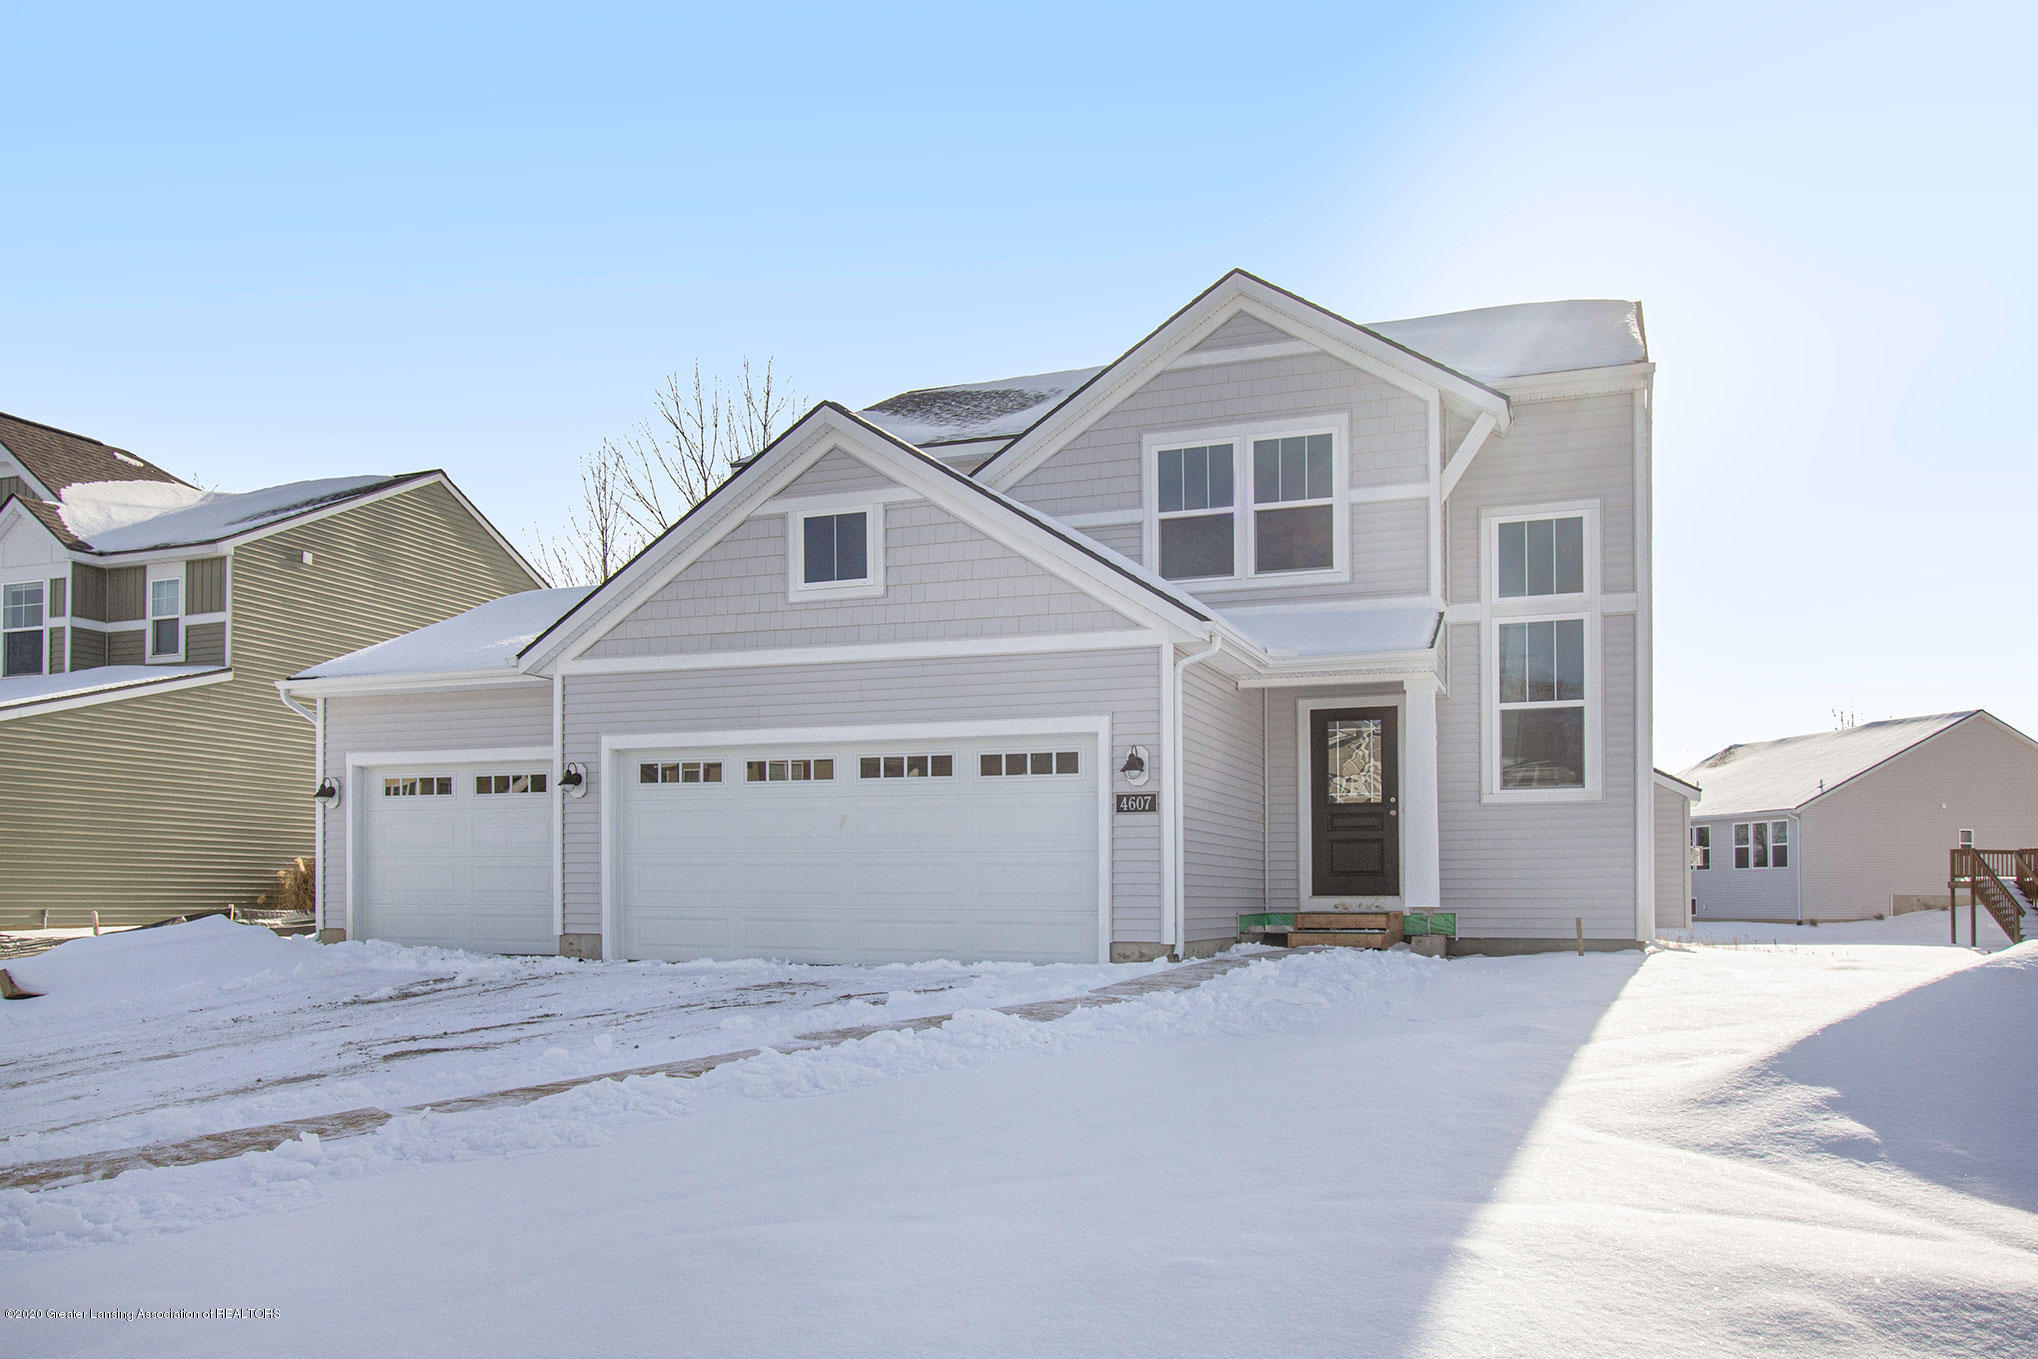 4607 Bison Dr - Front View - 2